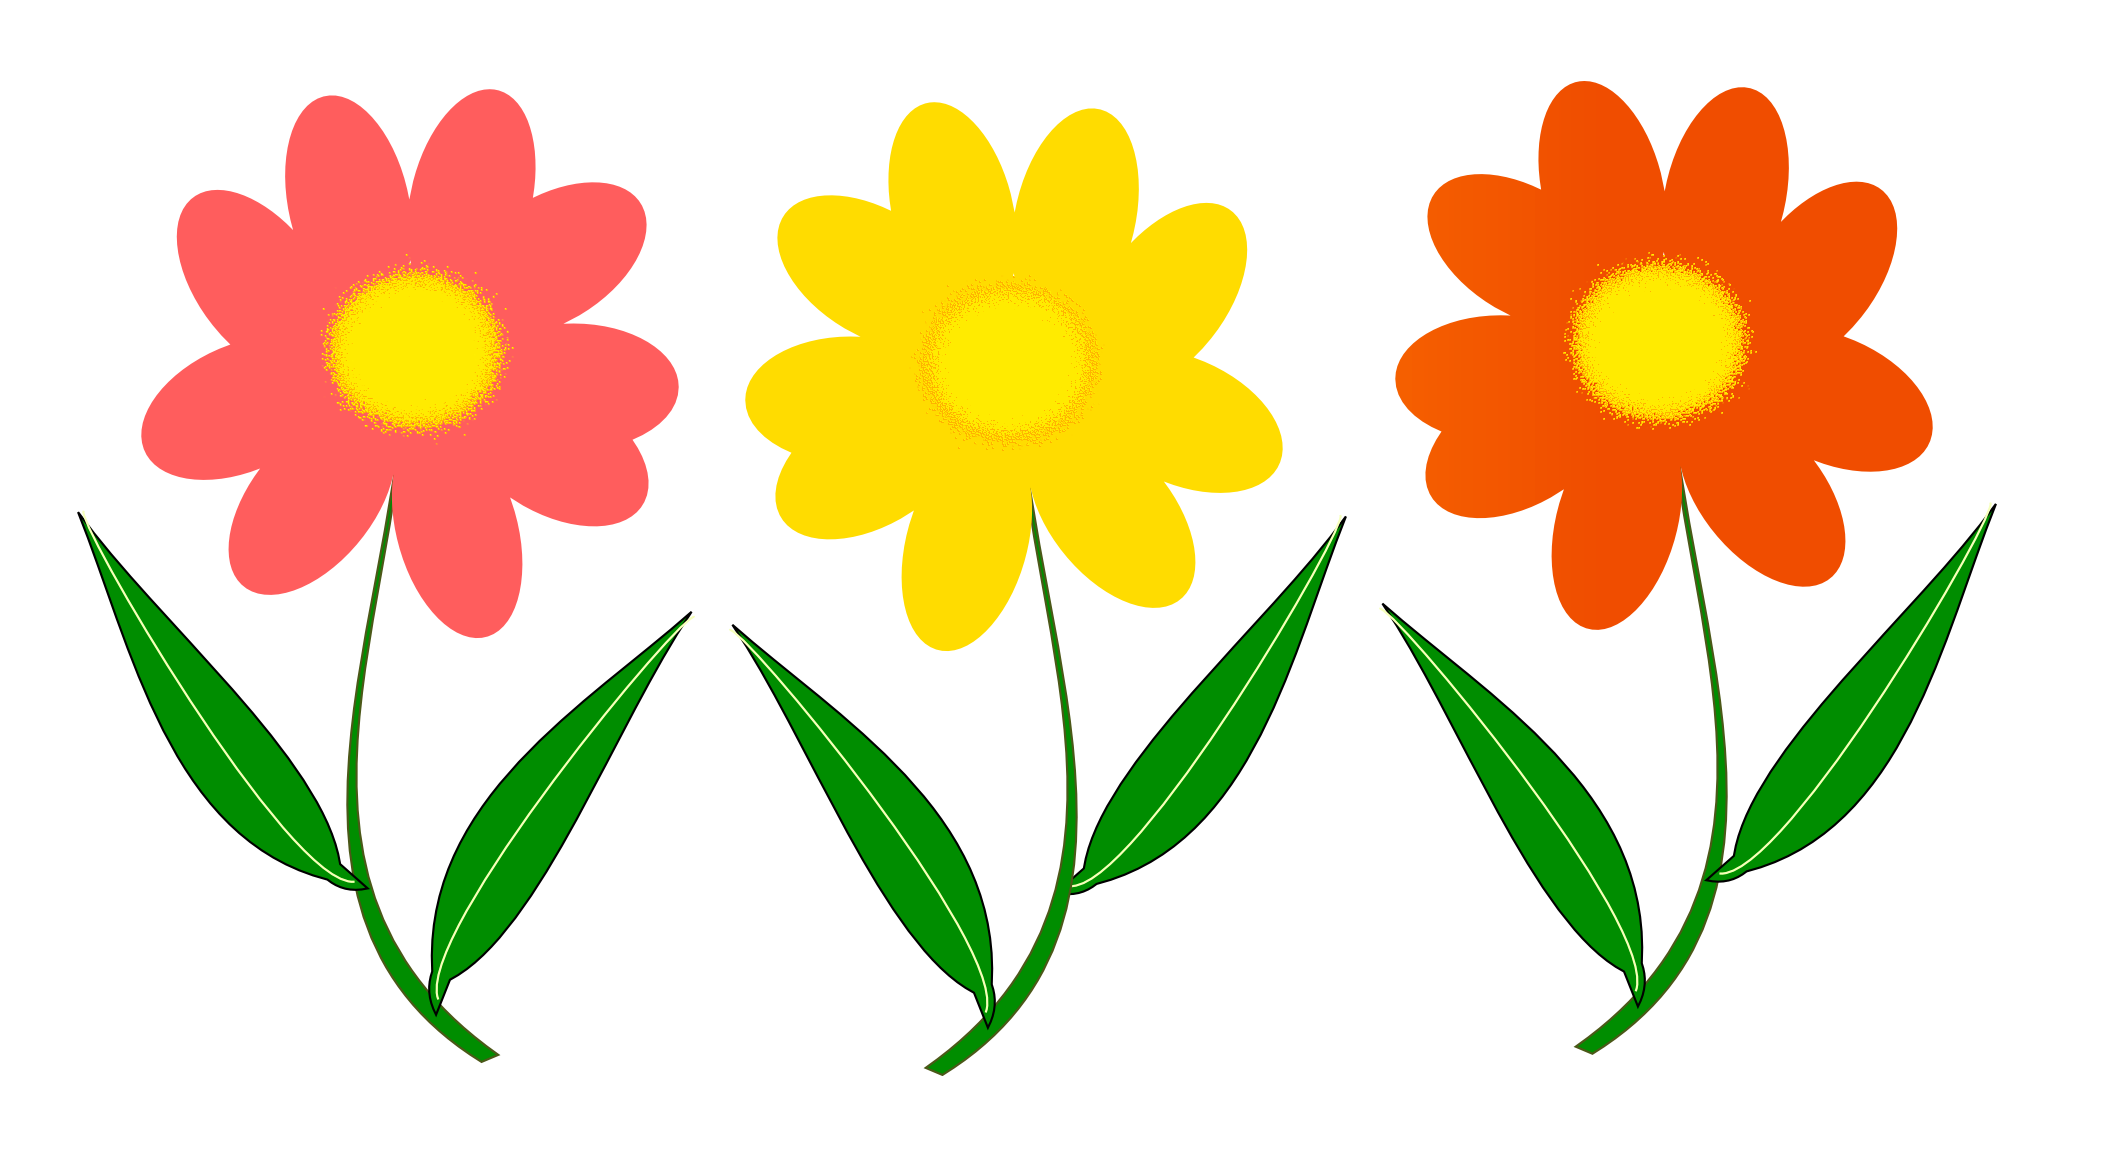 flower clipart vector transparent flowers clip vectors floral cliparts purepng fleurs tubes library